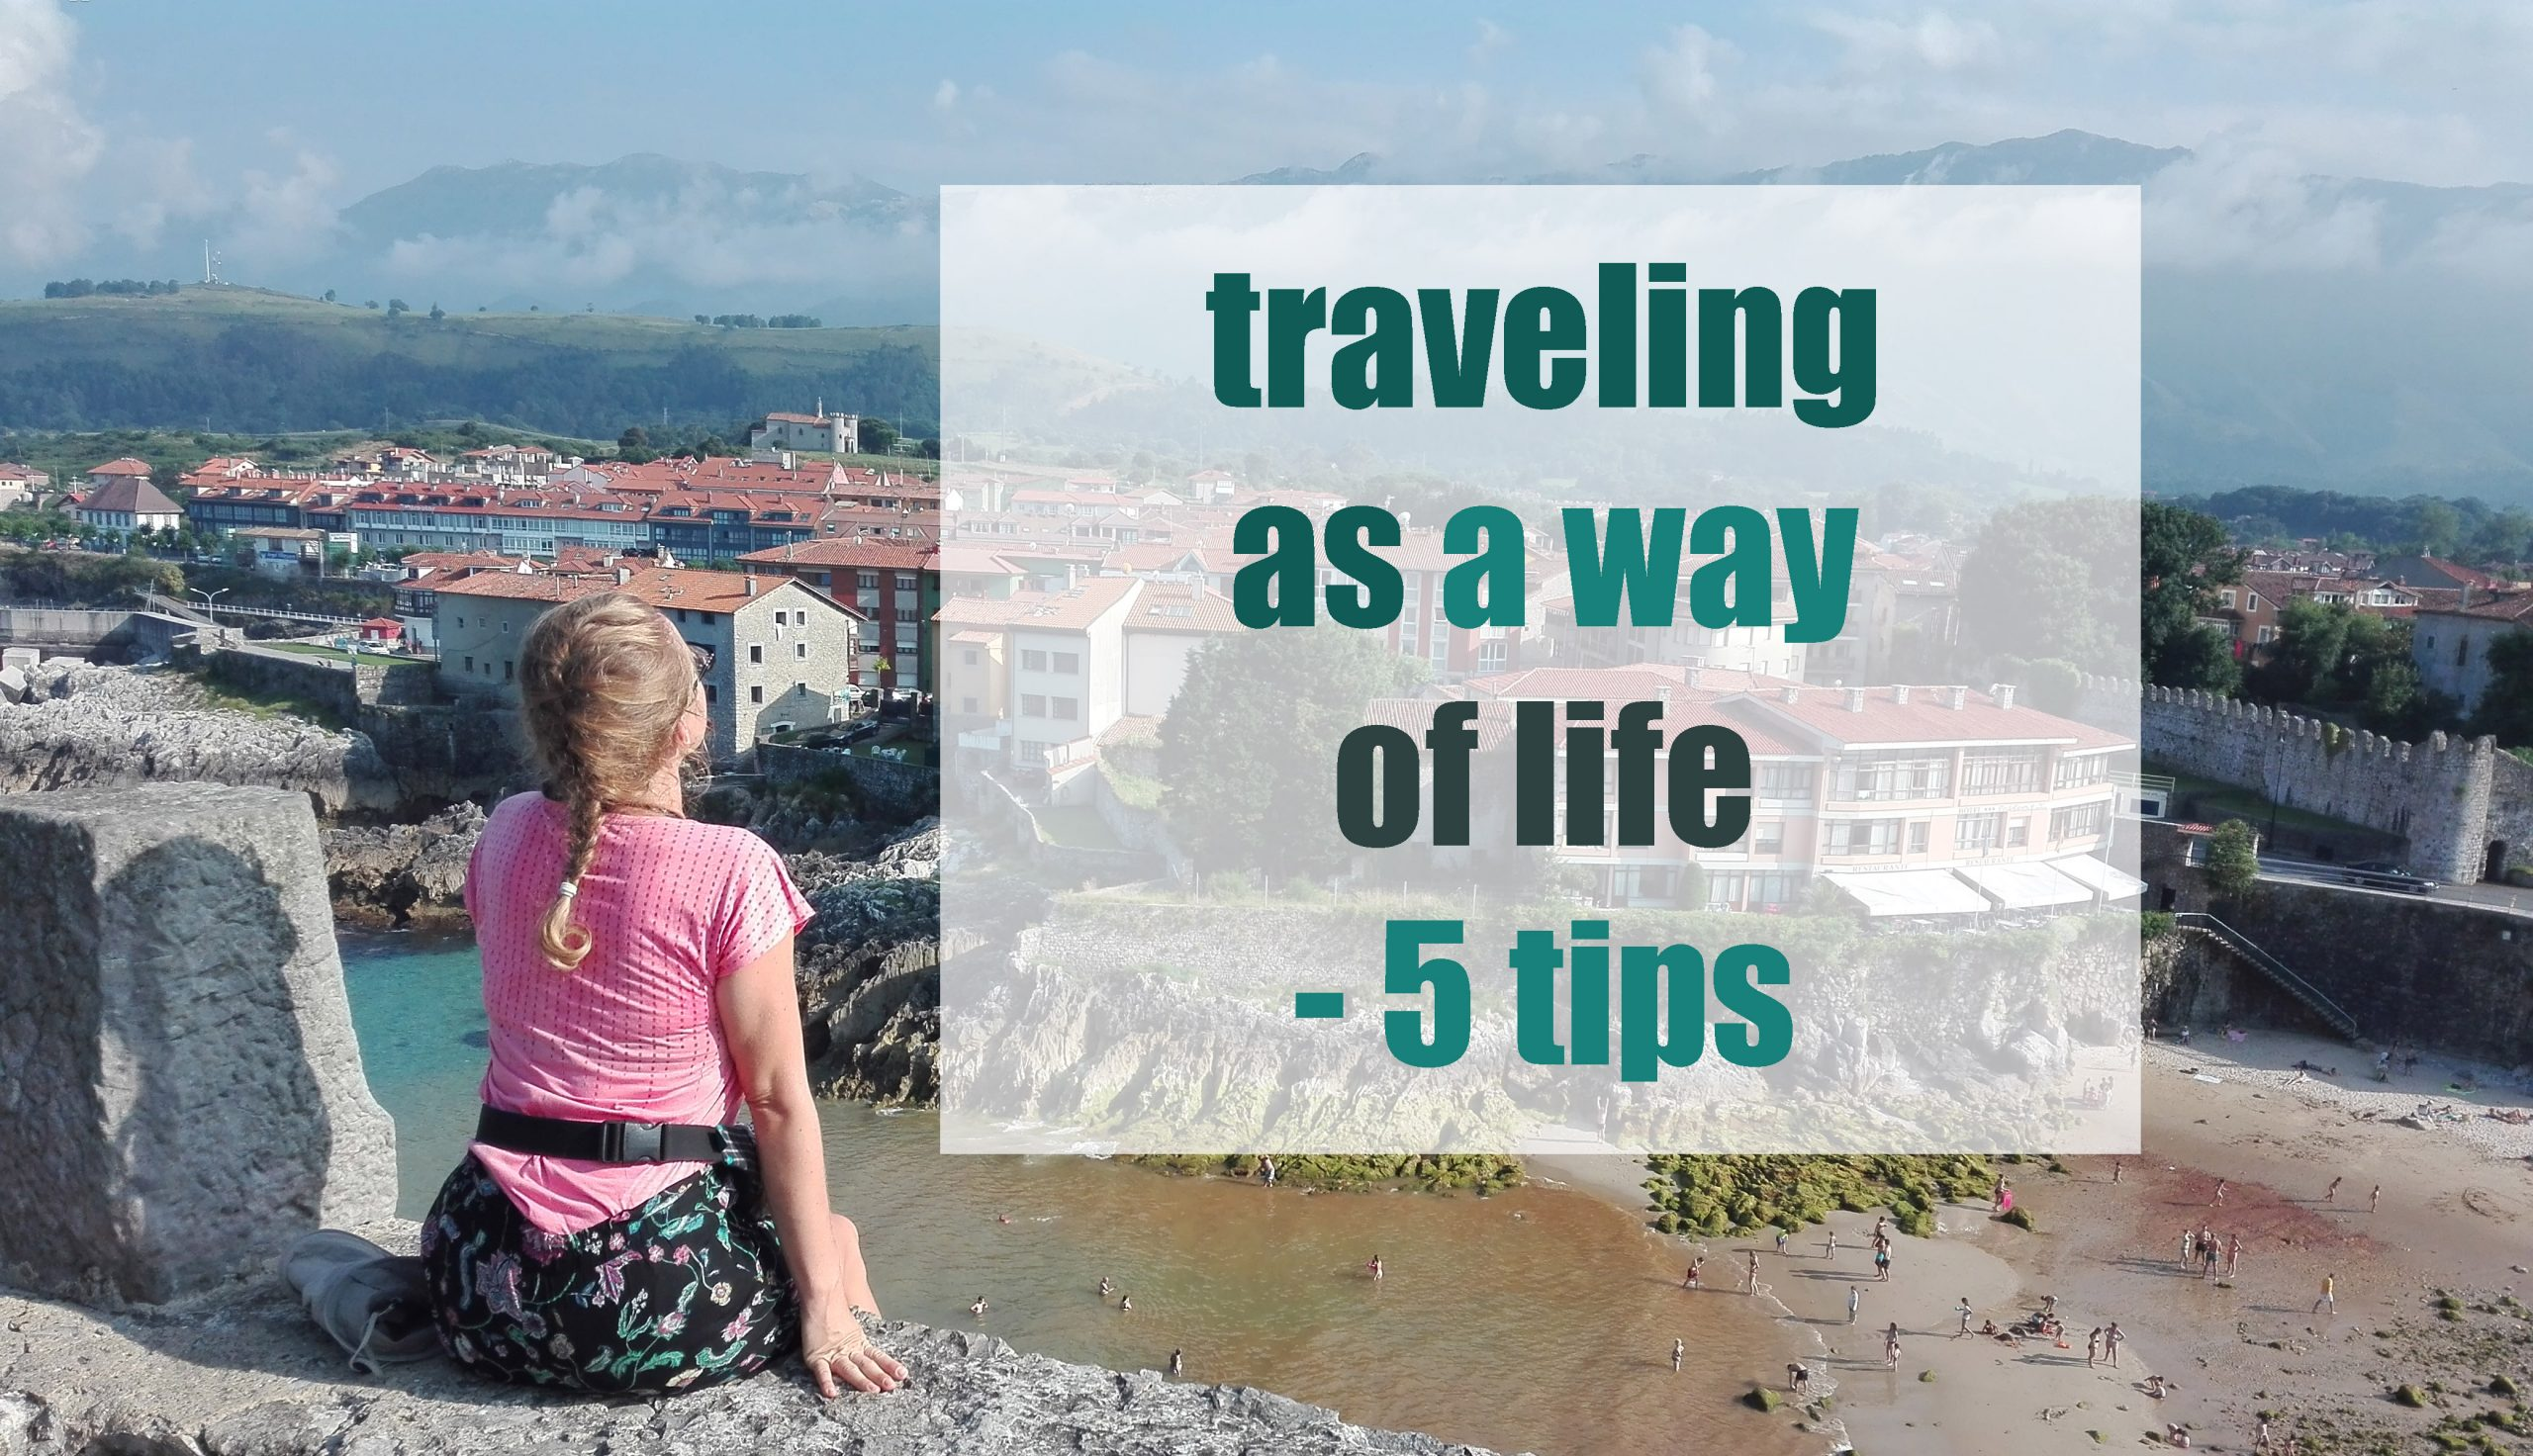 traveling as a way of life - 5 tips